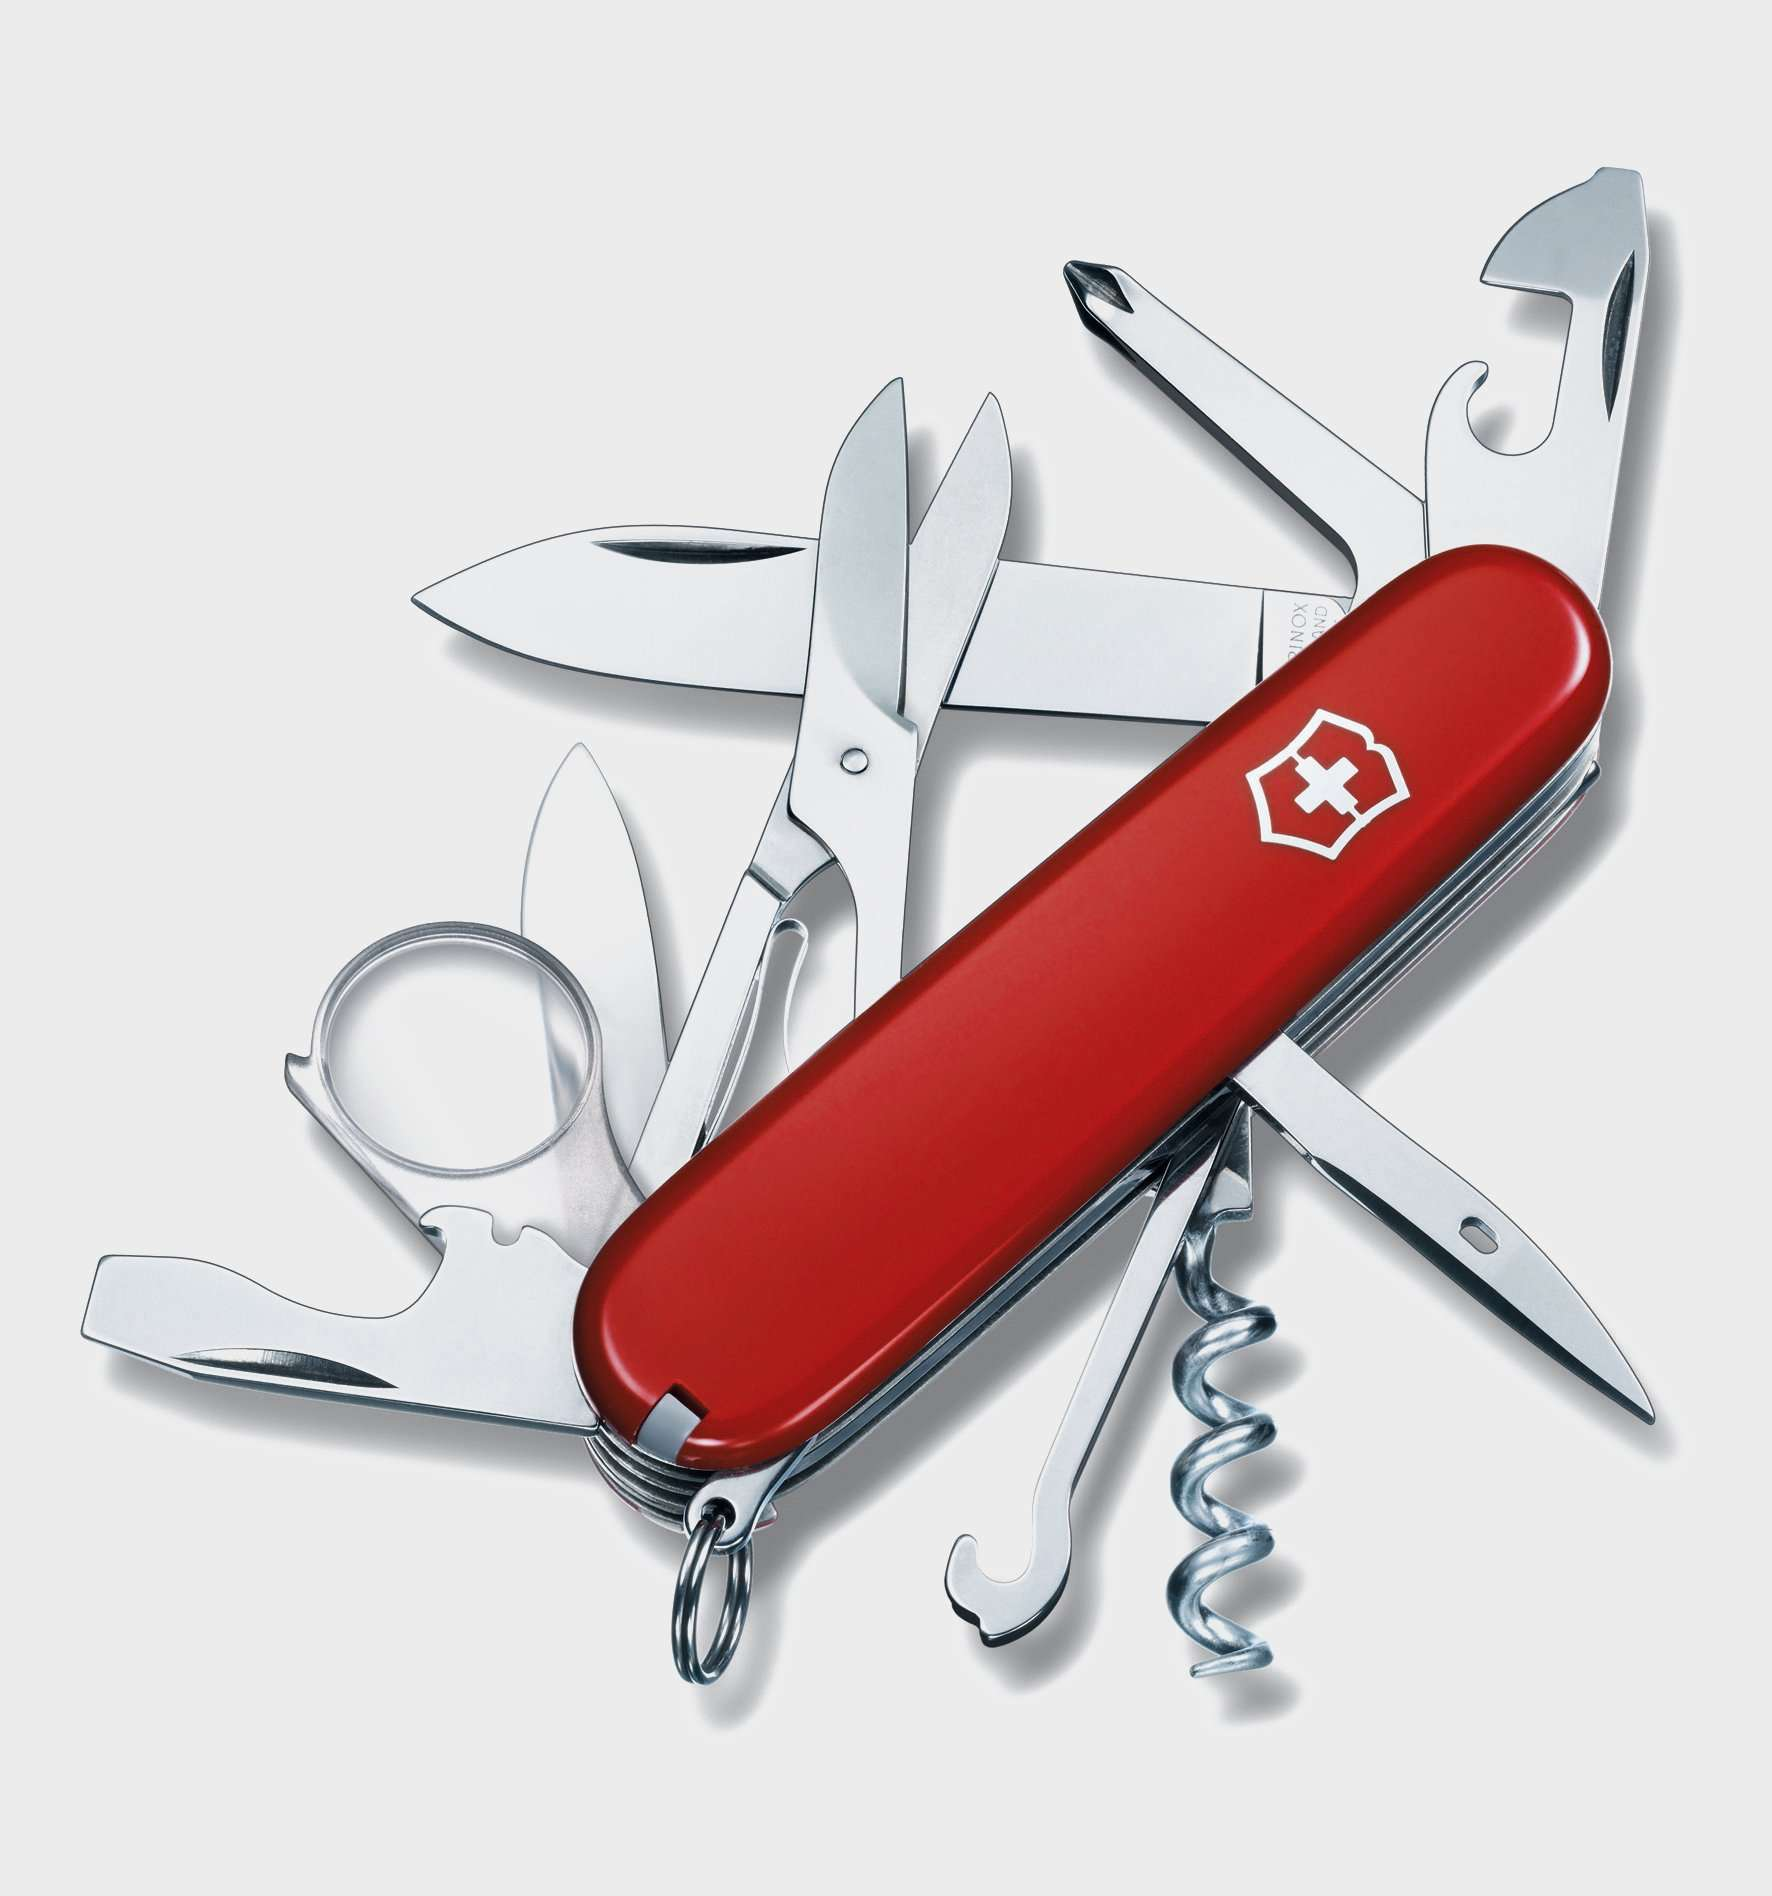 VICTORINOX Explorer Pocket Knife